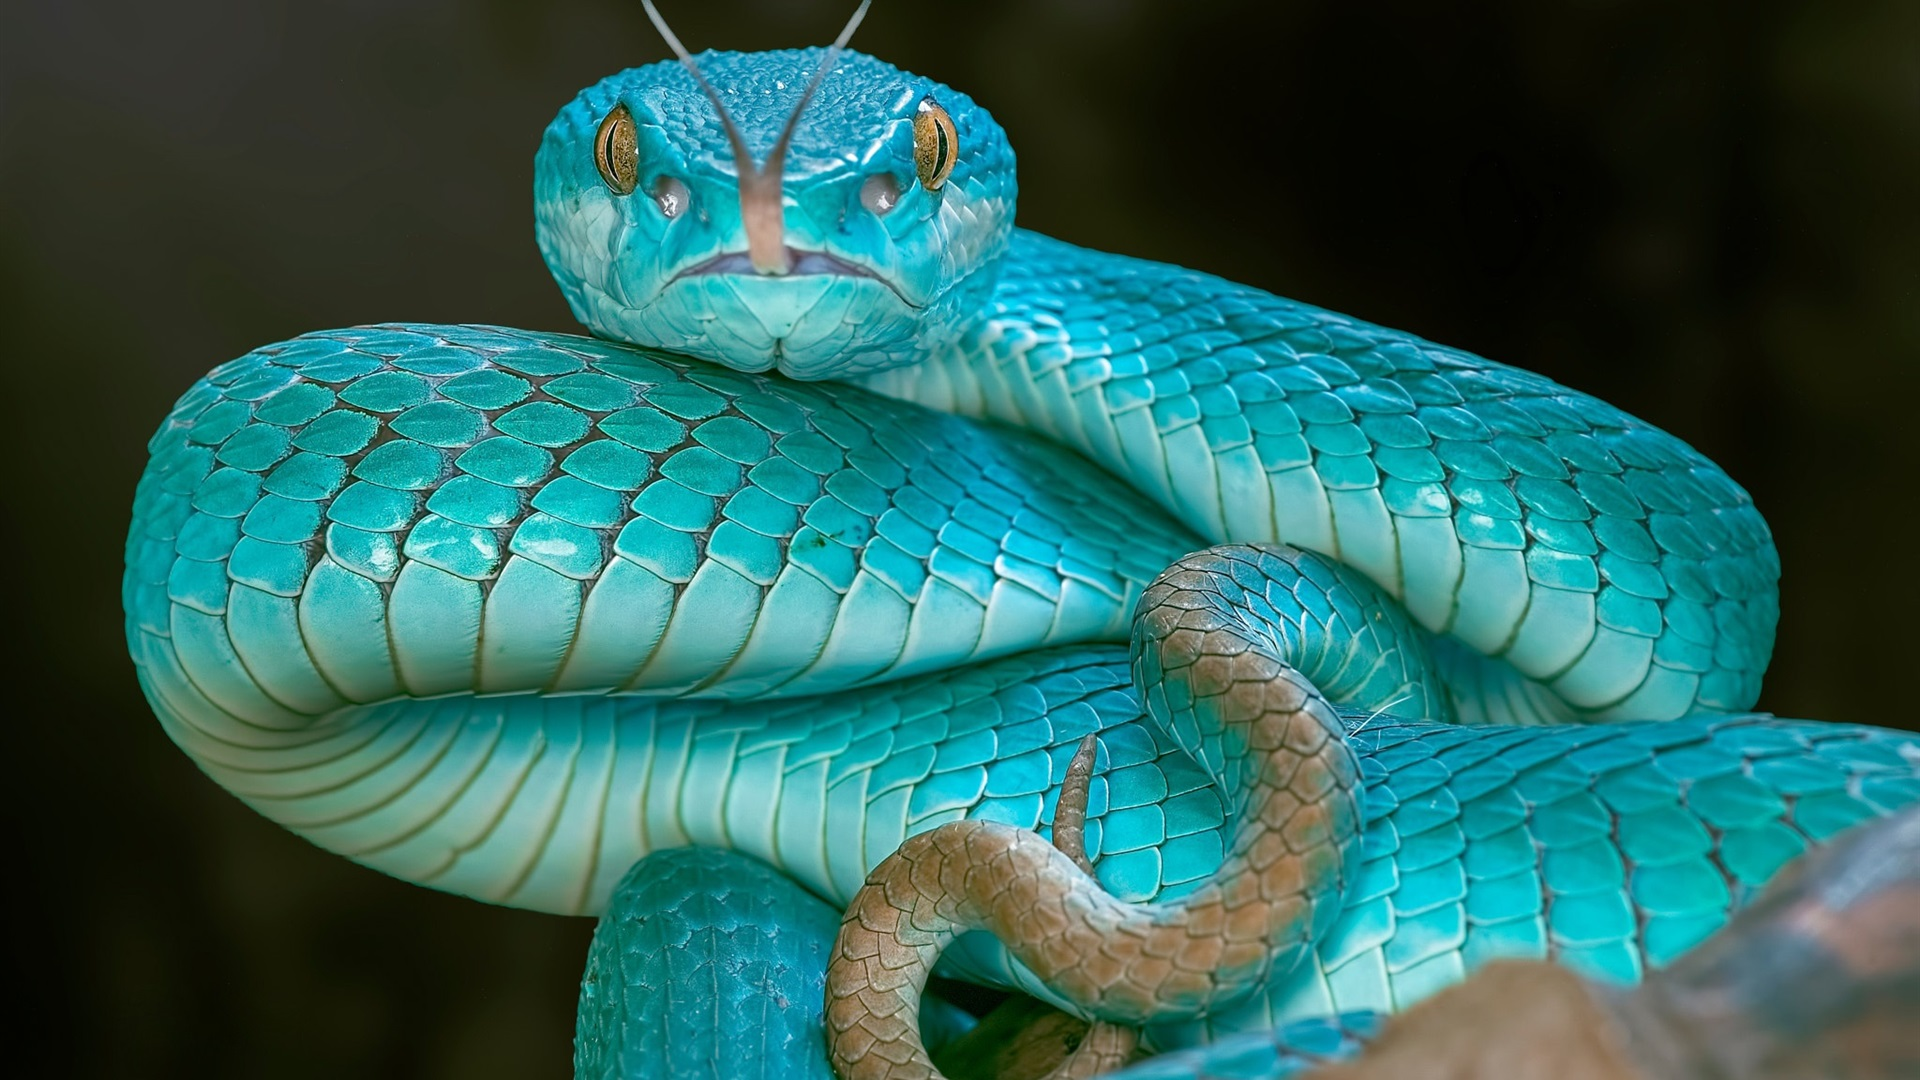 Snake Eyes Hd Wallpapers Wallpaper Blue Snake Viper Eyes 1920x1200 Hd Picture Image